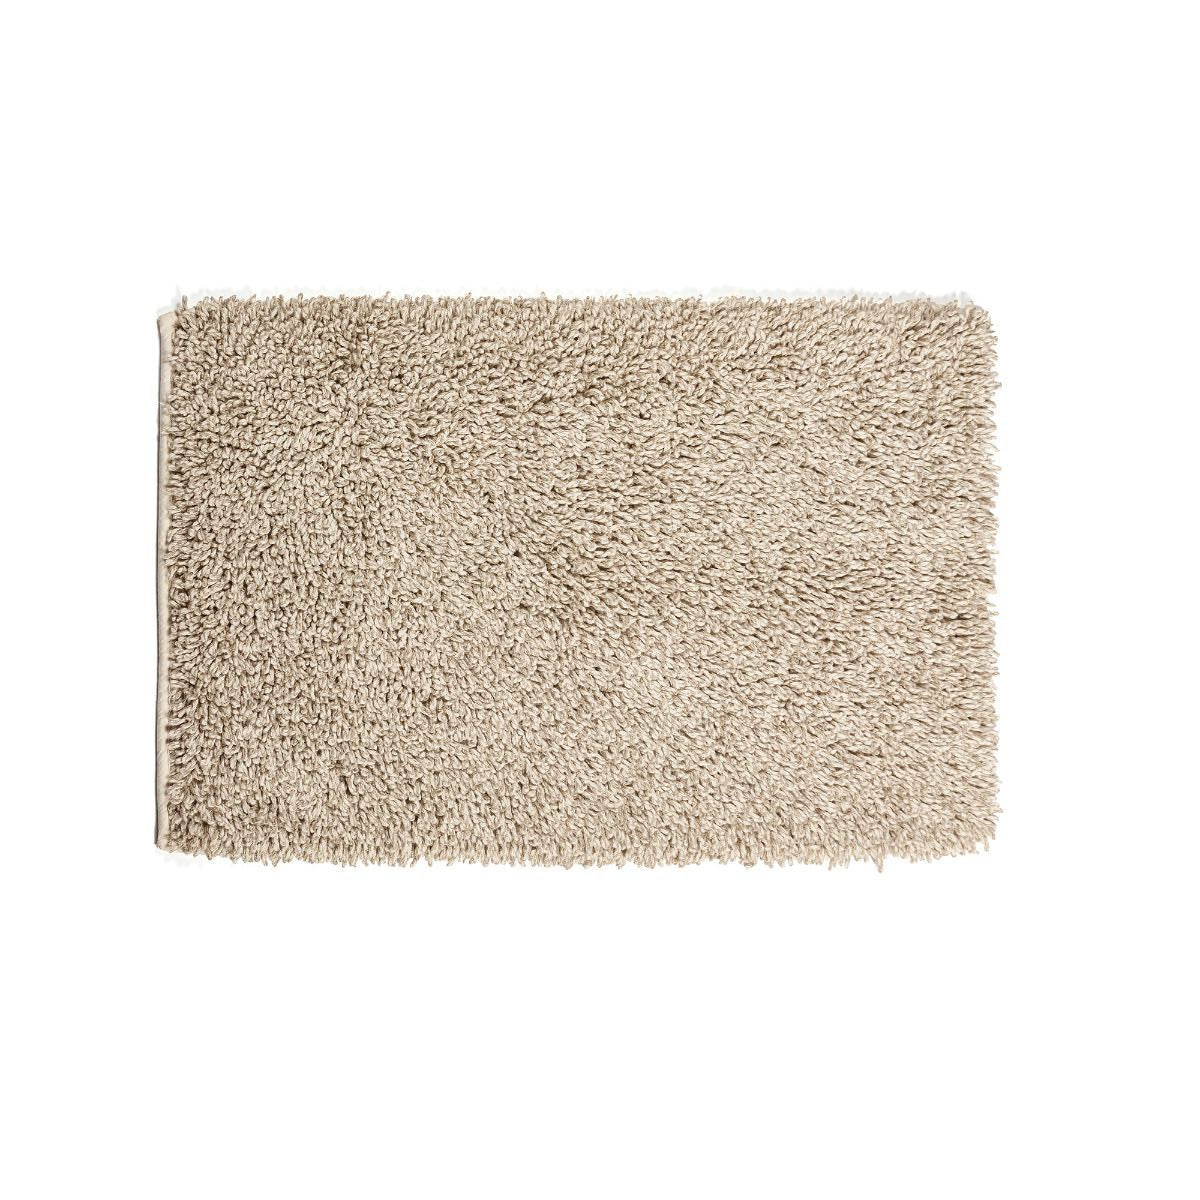 Calistoga Bath Rug, Oatmeal